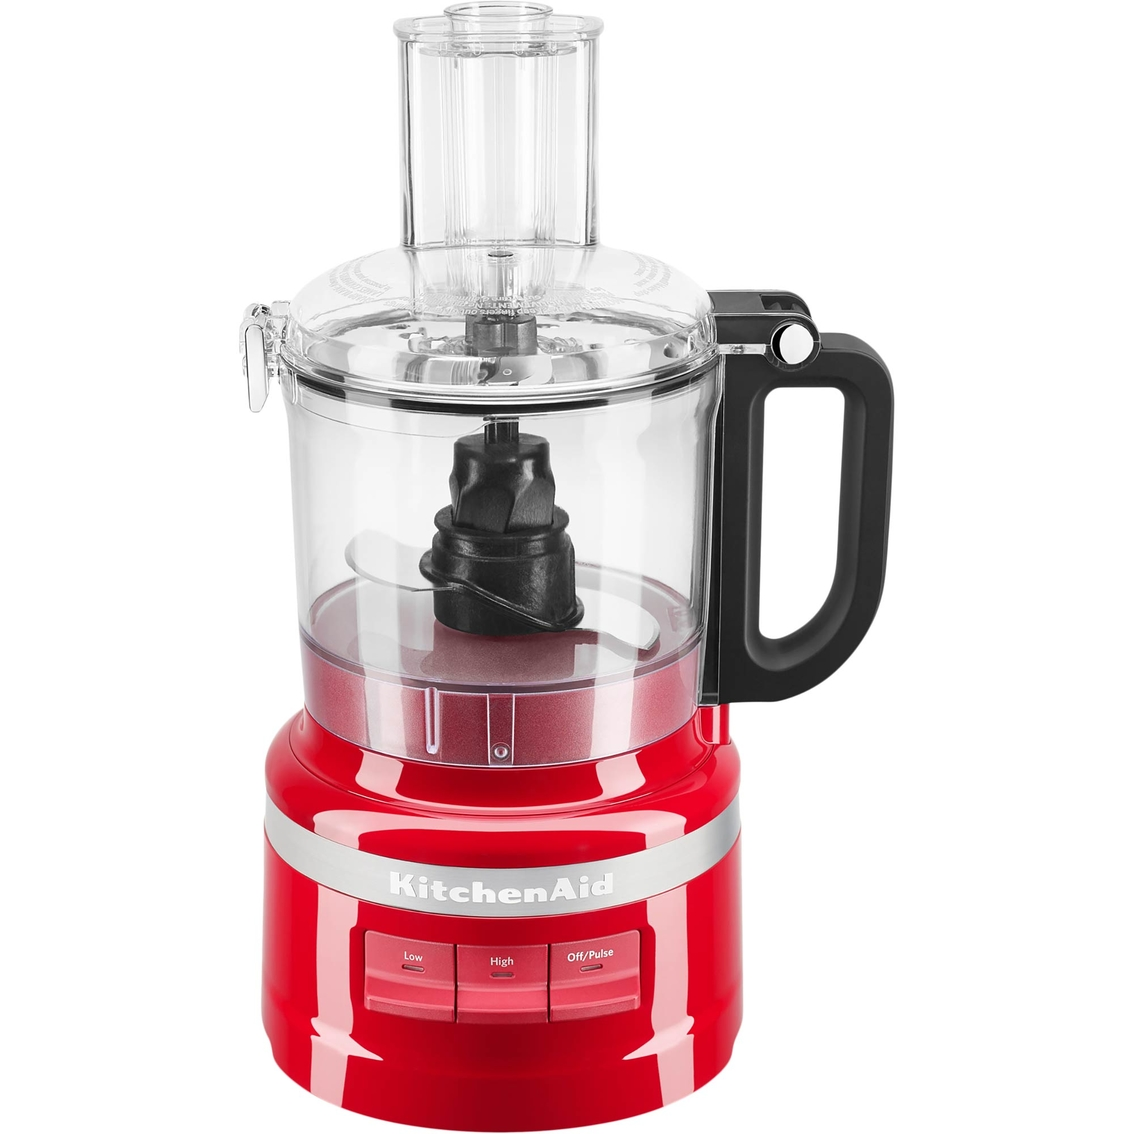 Kitchenaid 7 Cup Food Processor Plus Food Processors